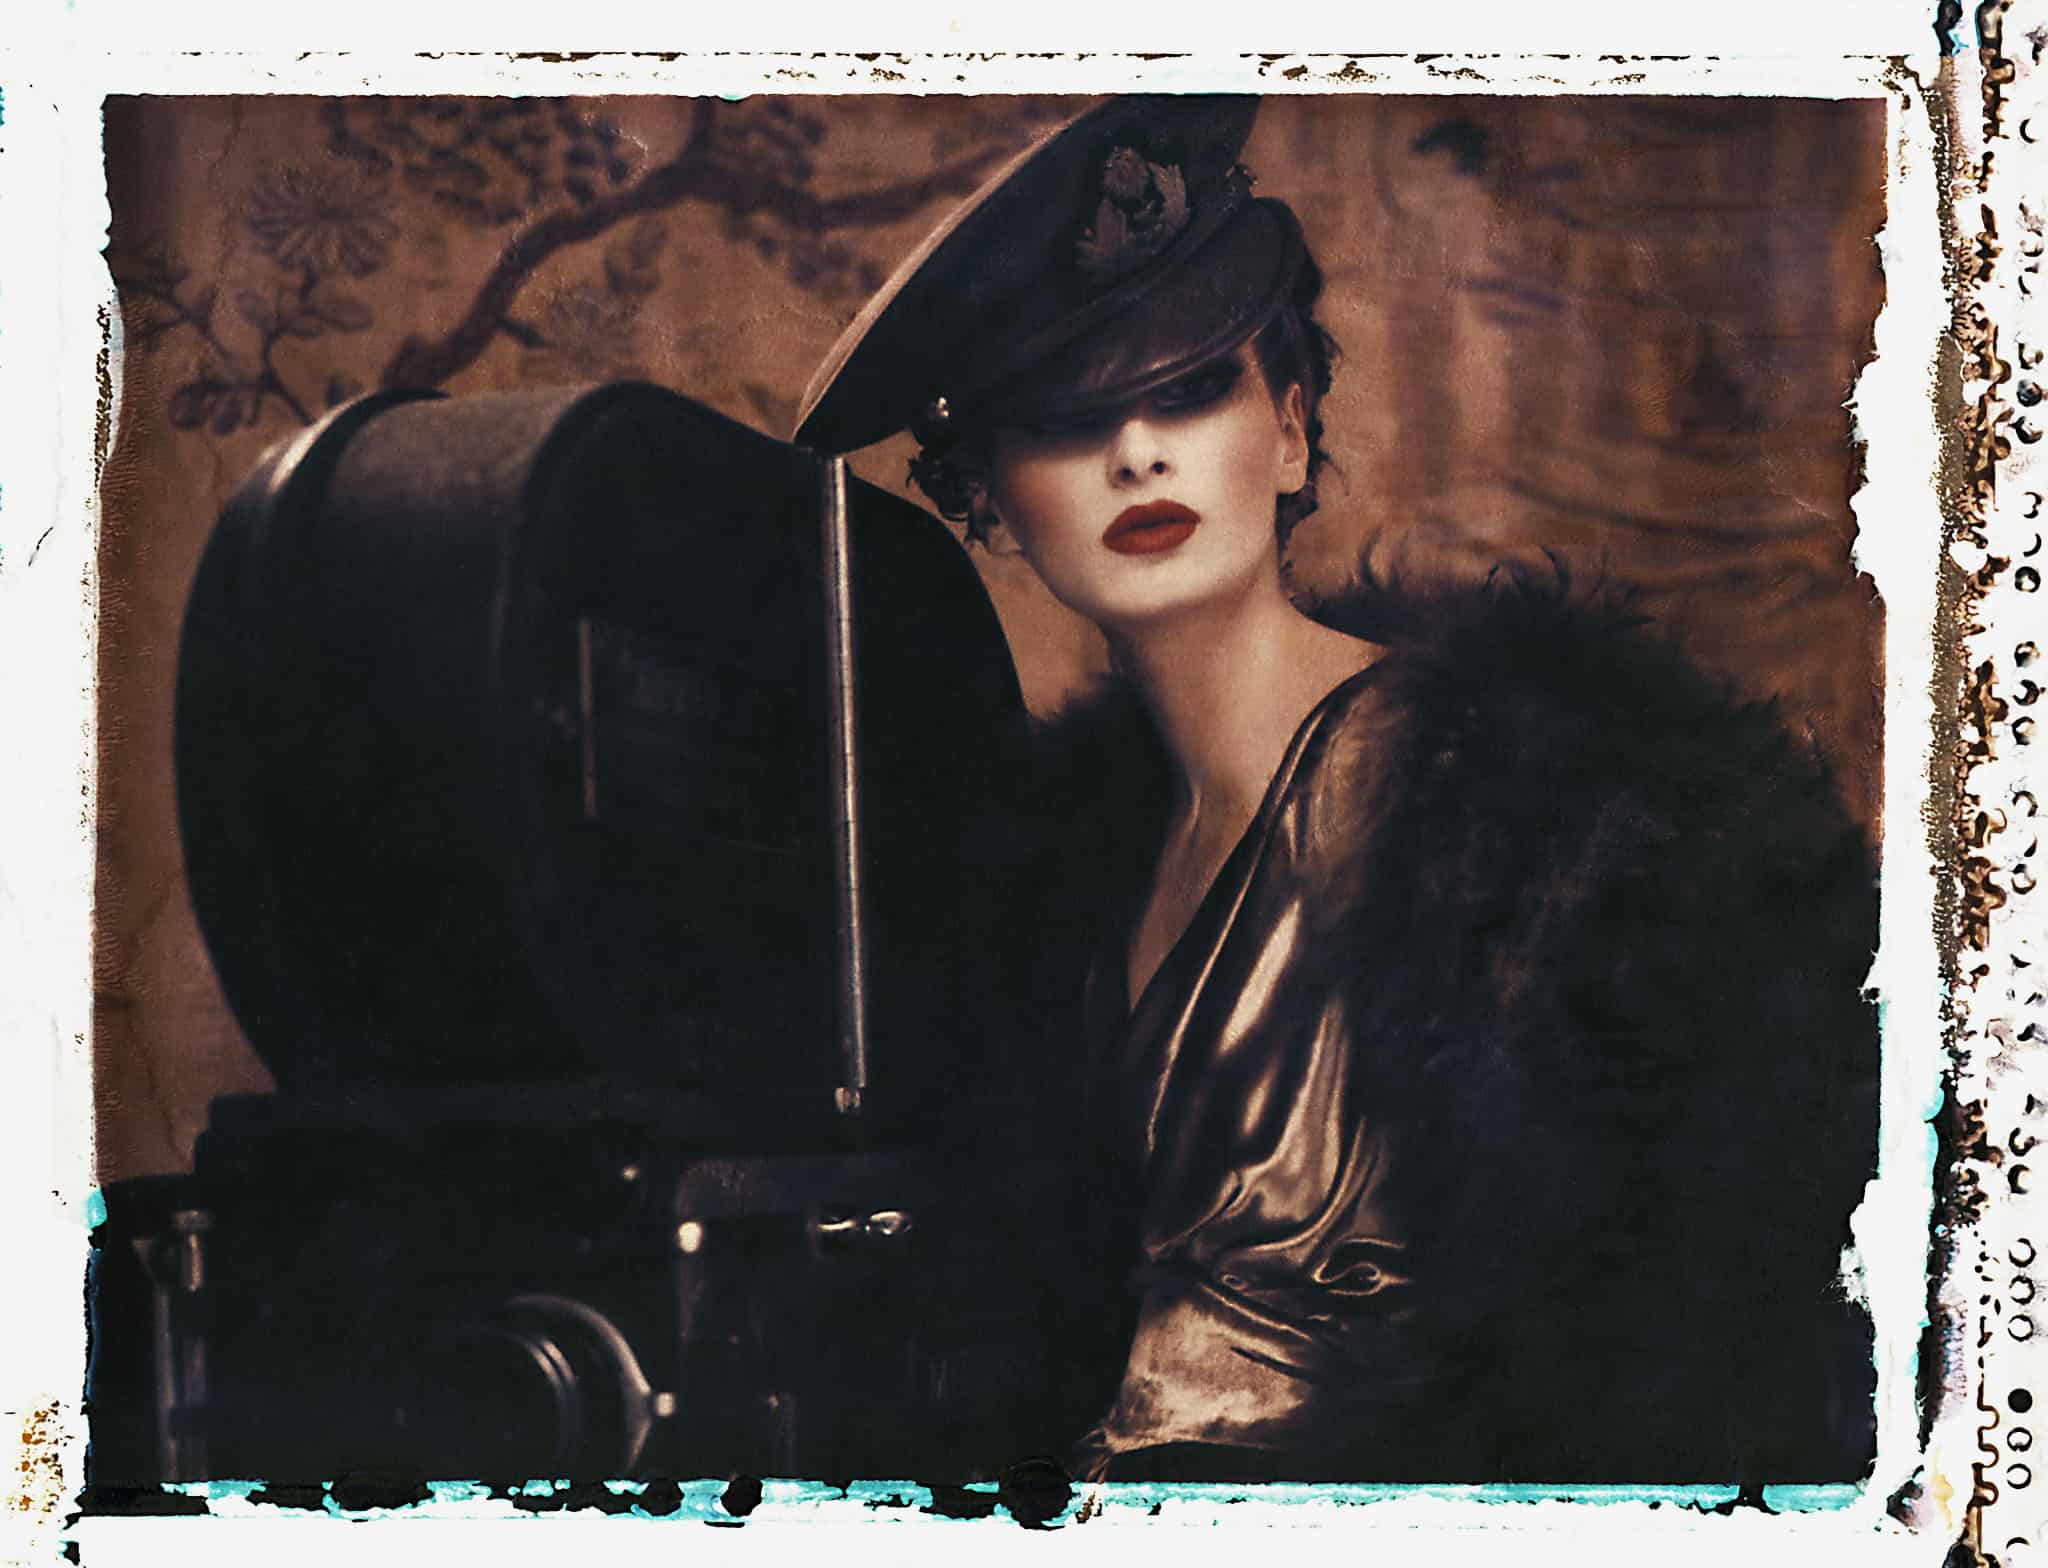 Fine art color photography of fashion model wearing couture by John Galliano.